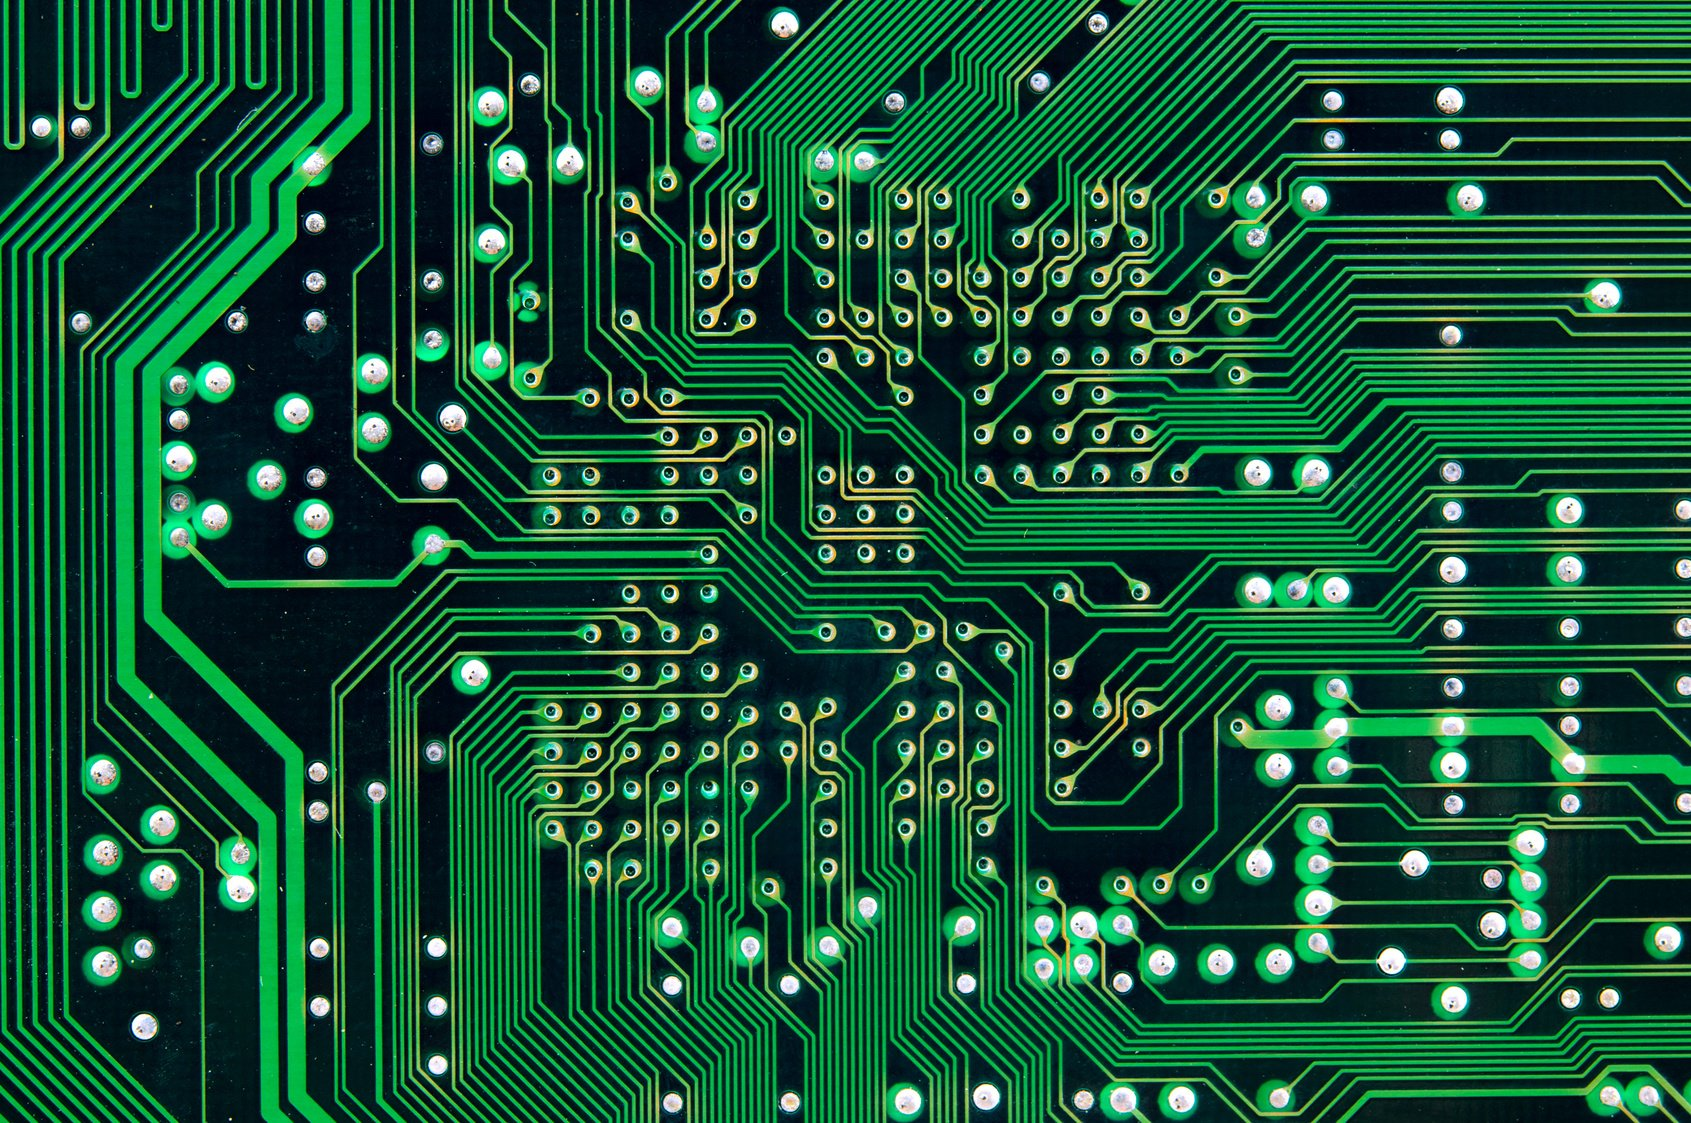 A Brief History Of Pcb Circuitboards Electrical Circuit Boards Popular In Older Computer And Designs Every Component Had Single Wire Connecting All The Leads Inside Was Huge Jumble